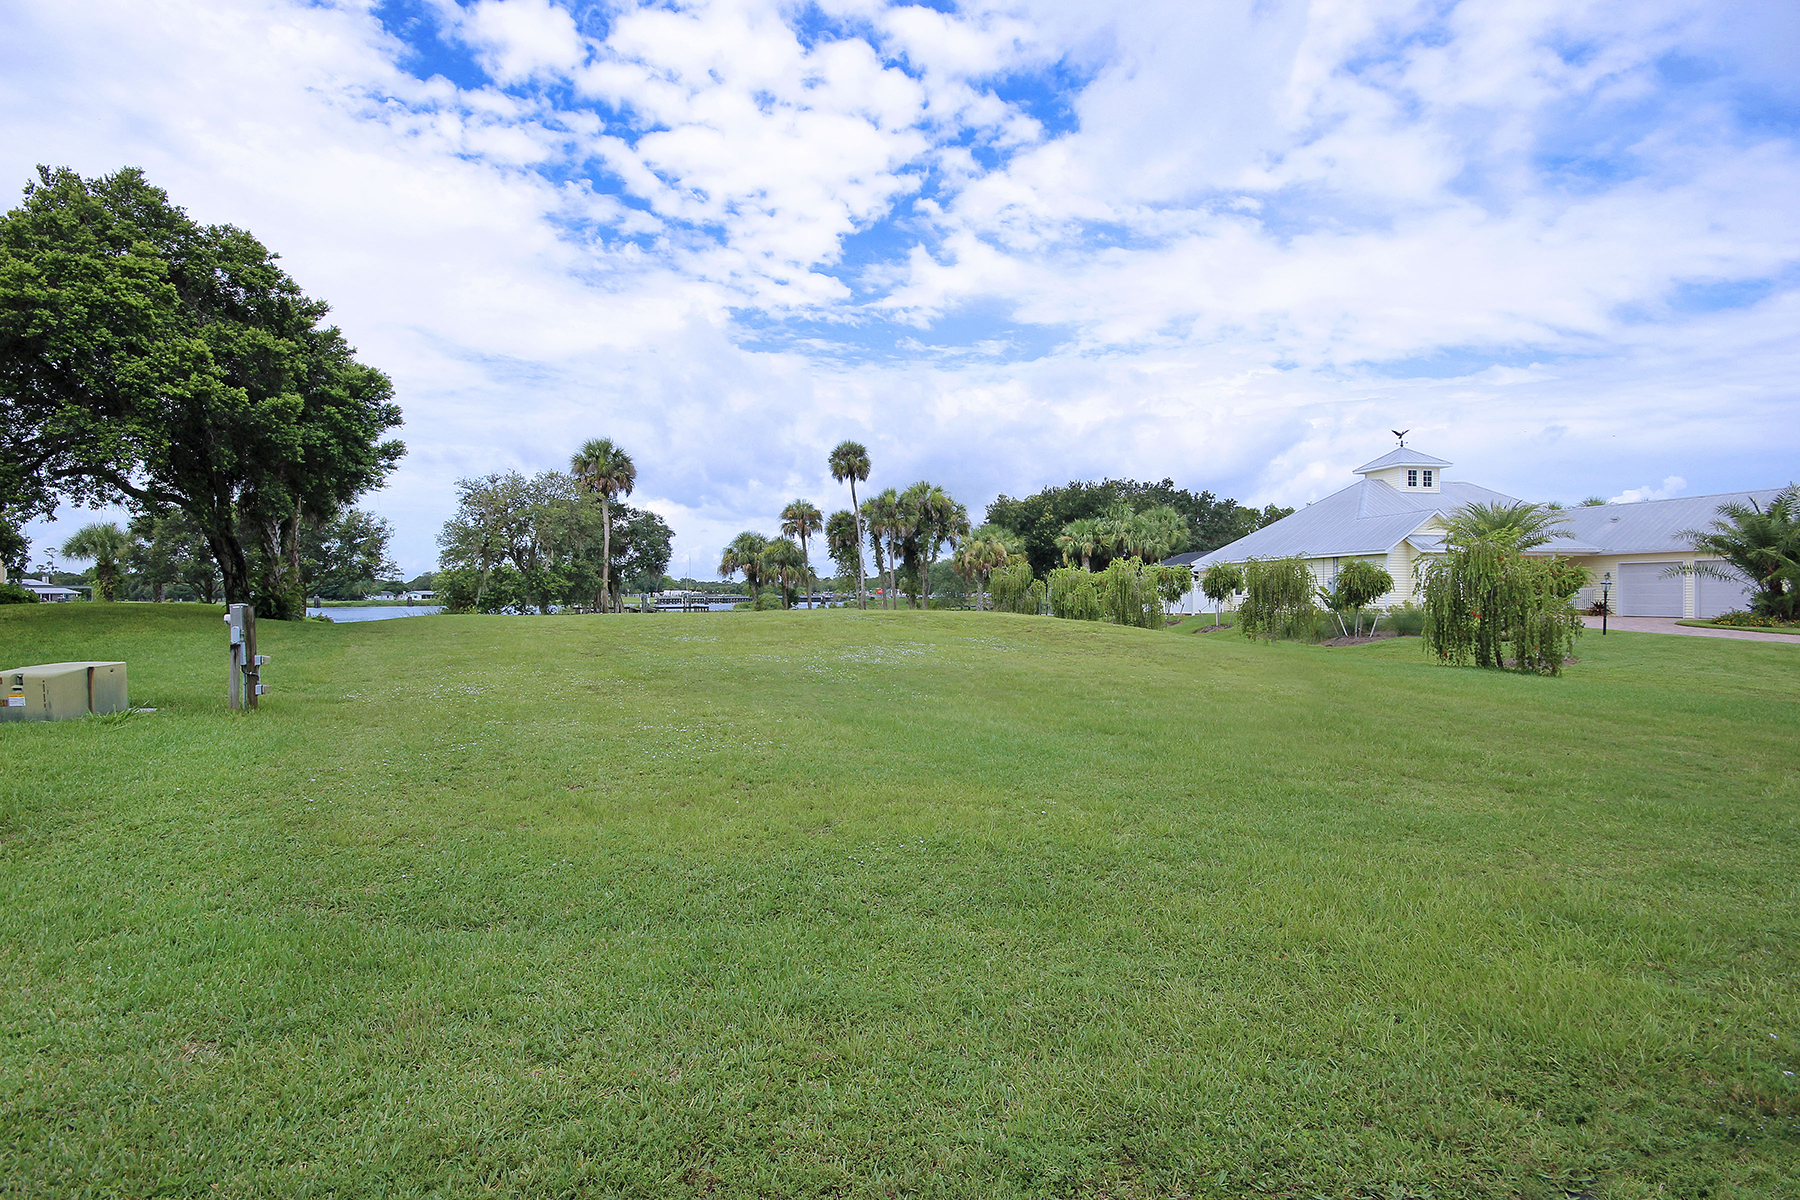 Land for Sale at ALVA 16440 Oakview Cir, Alva, Florida 33920 United States